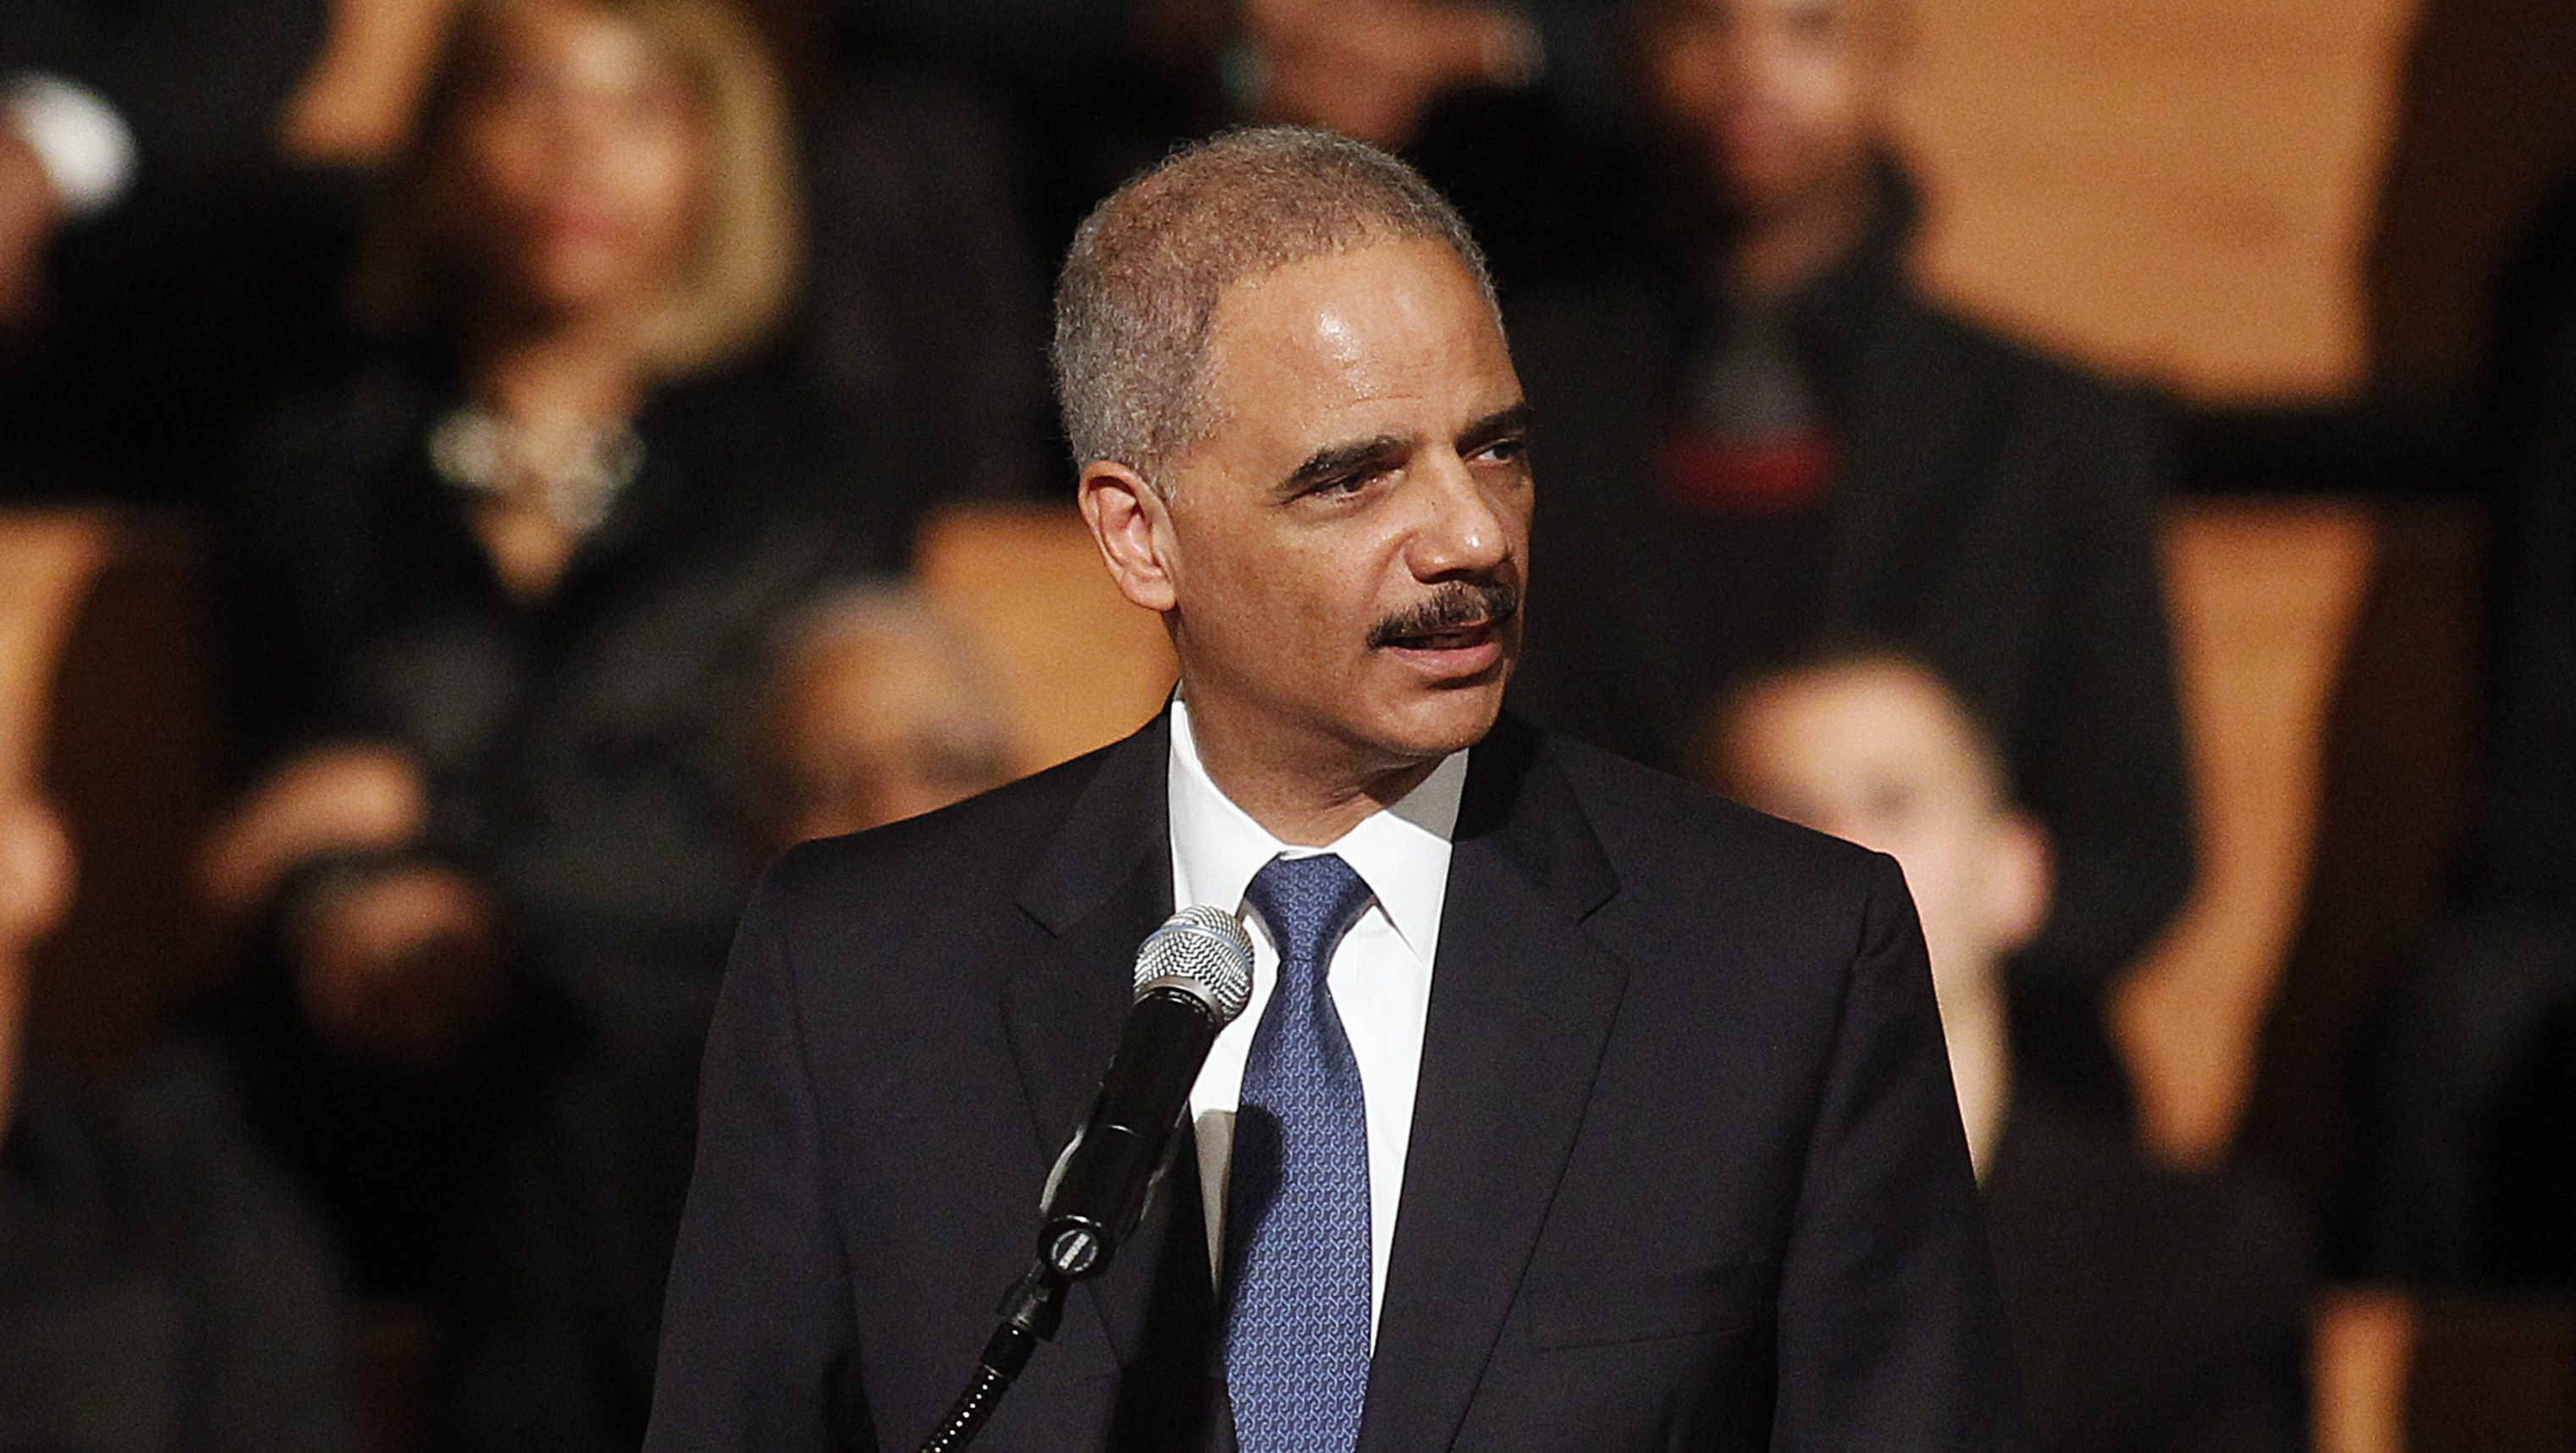 """U.S. Attorney General Eric Holder speaks at the Ebenezer Baptist Church during a forum titled """"The Community Speaks"""" in Atlanta, Georgia December 1, 2014. Holder said on Monday he would soon release new guidelines to limit racial profiling by federal law enforcement, a move long awaited by civil rights advocates. Holder announced his plan at Ebenezer Baptist Church in Atlanta, in the wake of unrest in Ferguson, Missouri following a grand jury's decision last week not to indict white police officer Darren Wilson in the killing of unarmed black teen Michael Brown.  REUTERS/Tami Chappell  (UNITED STATES - Tags: POLITICS CIVIL UNREST CRIME LAW) - RTR4GBRP"""